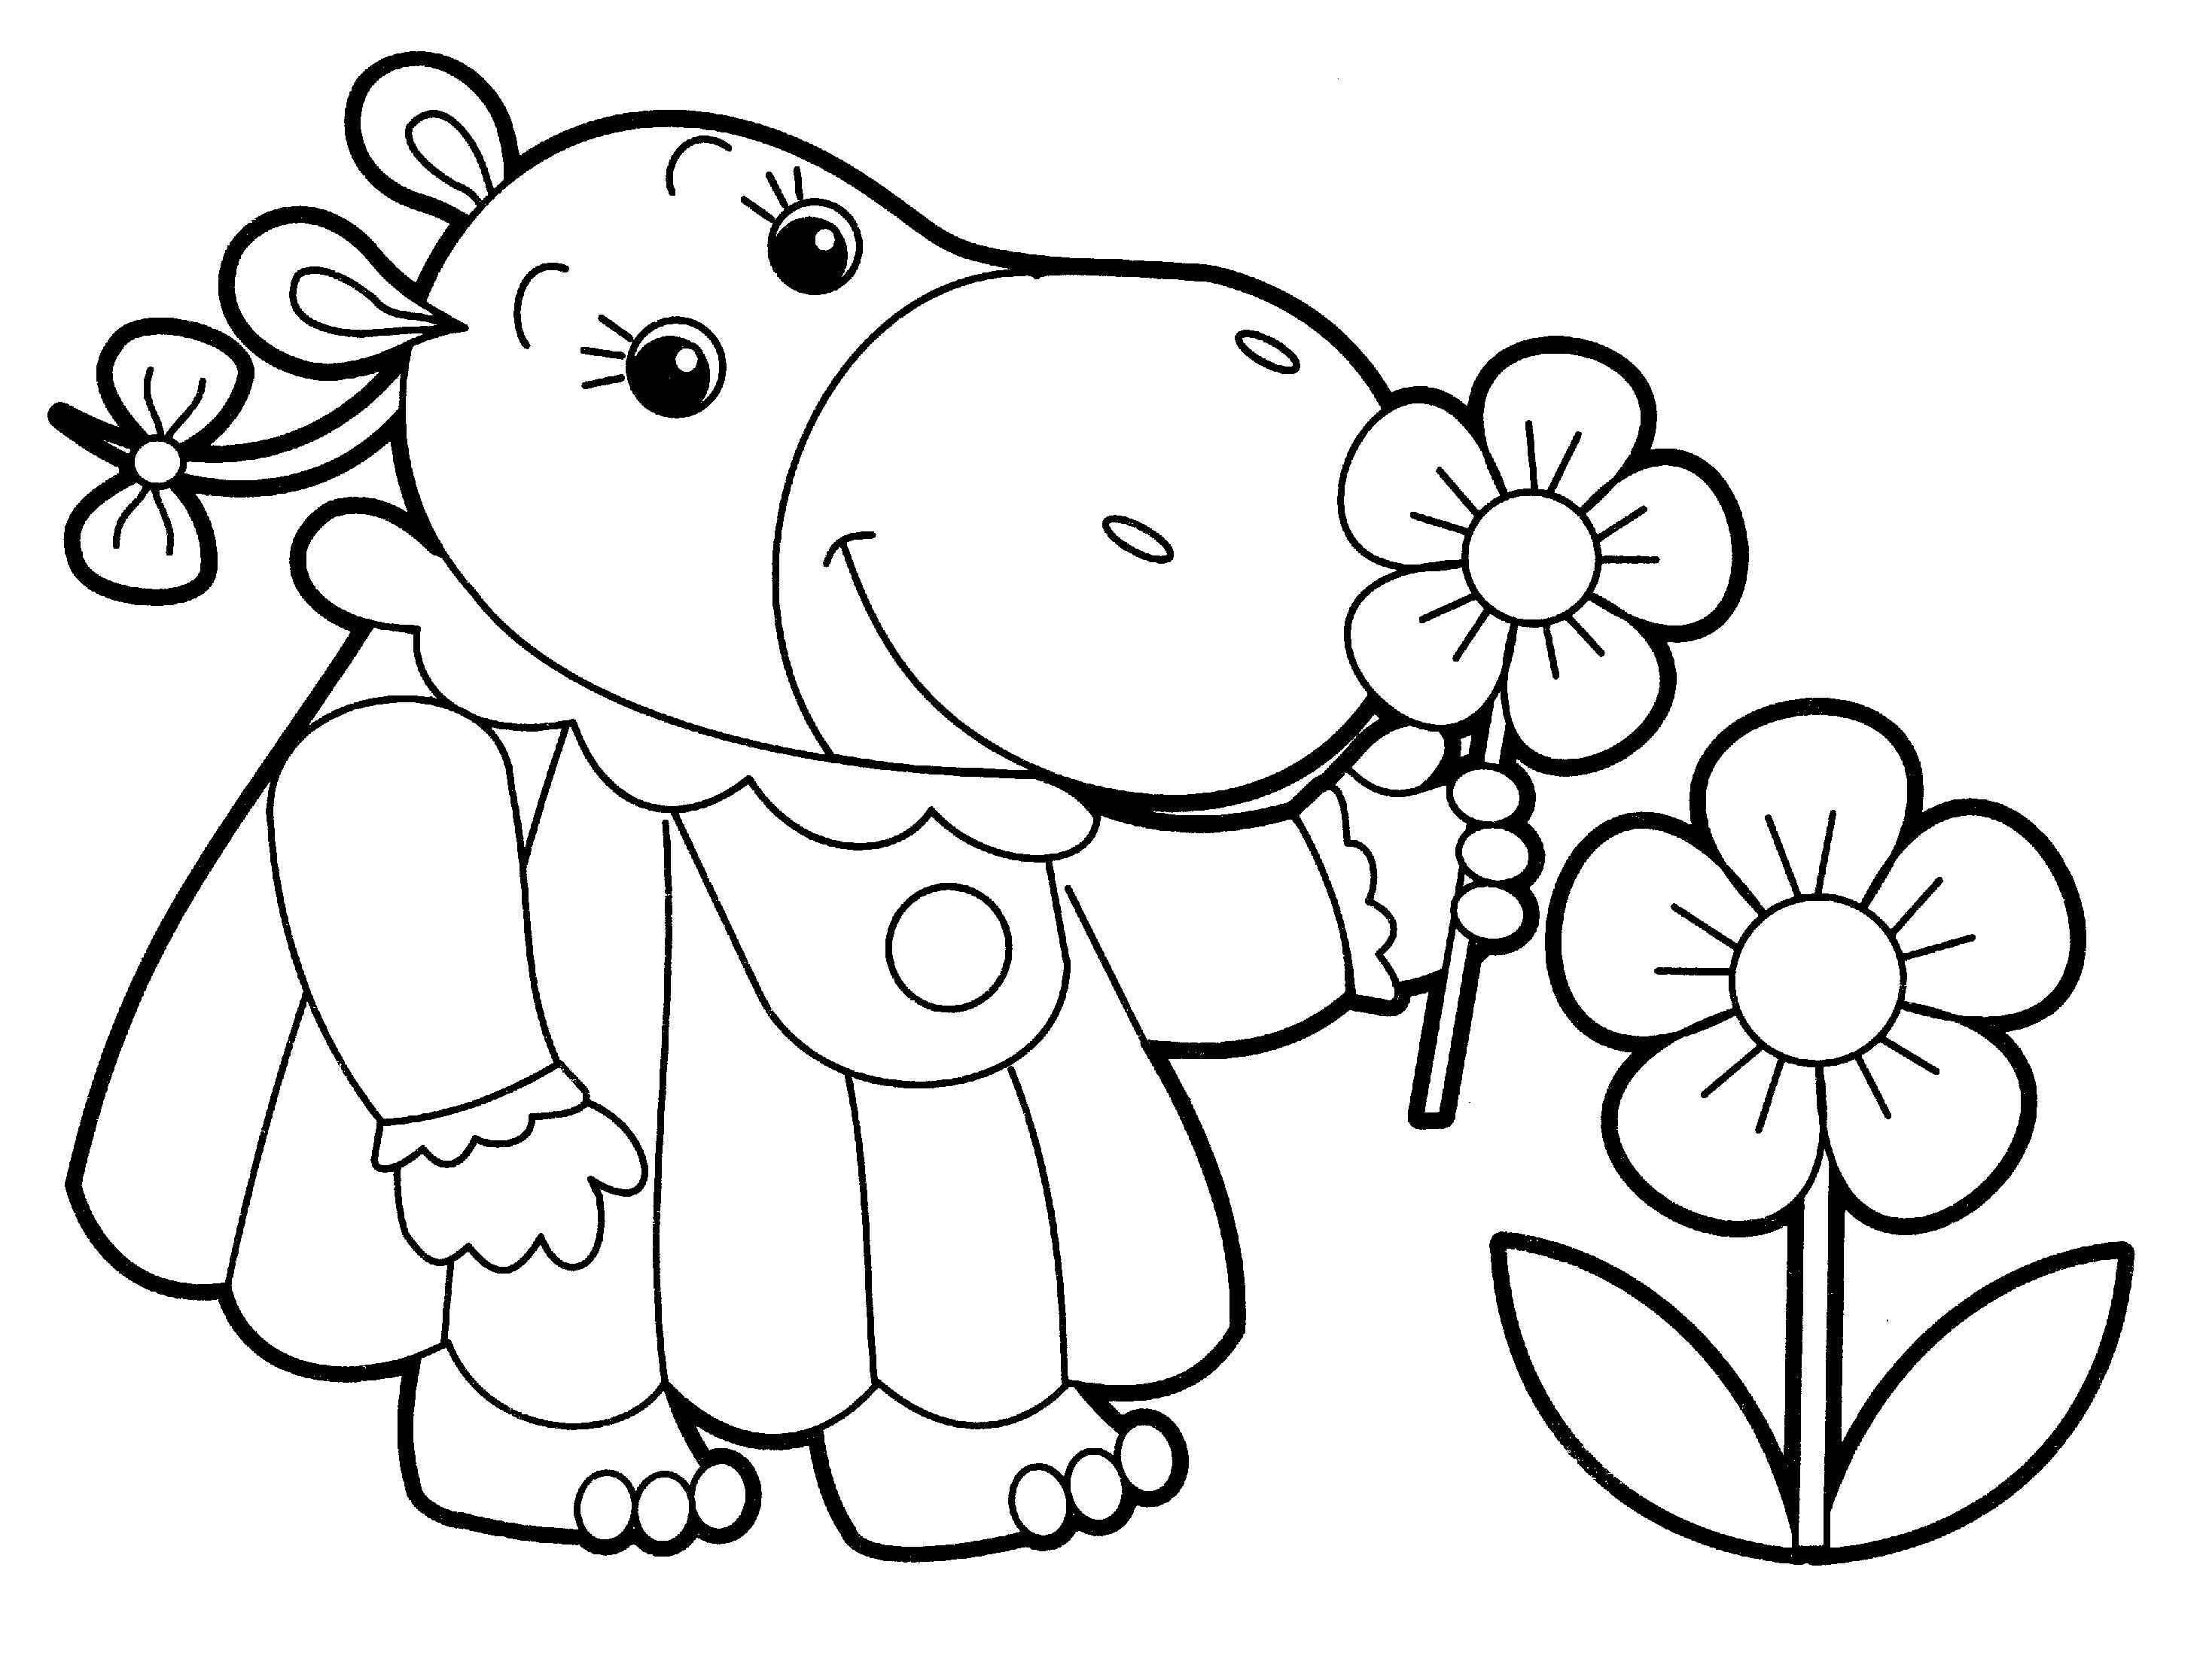 Coloring Book For Kids Animals  Animal Coloring Pages for Adults Bestofcoloring